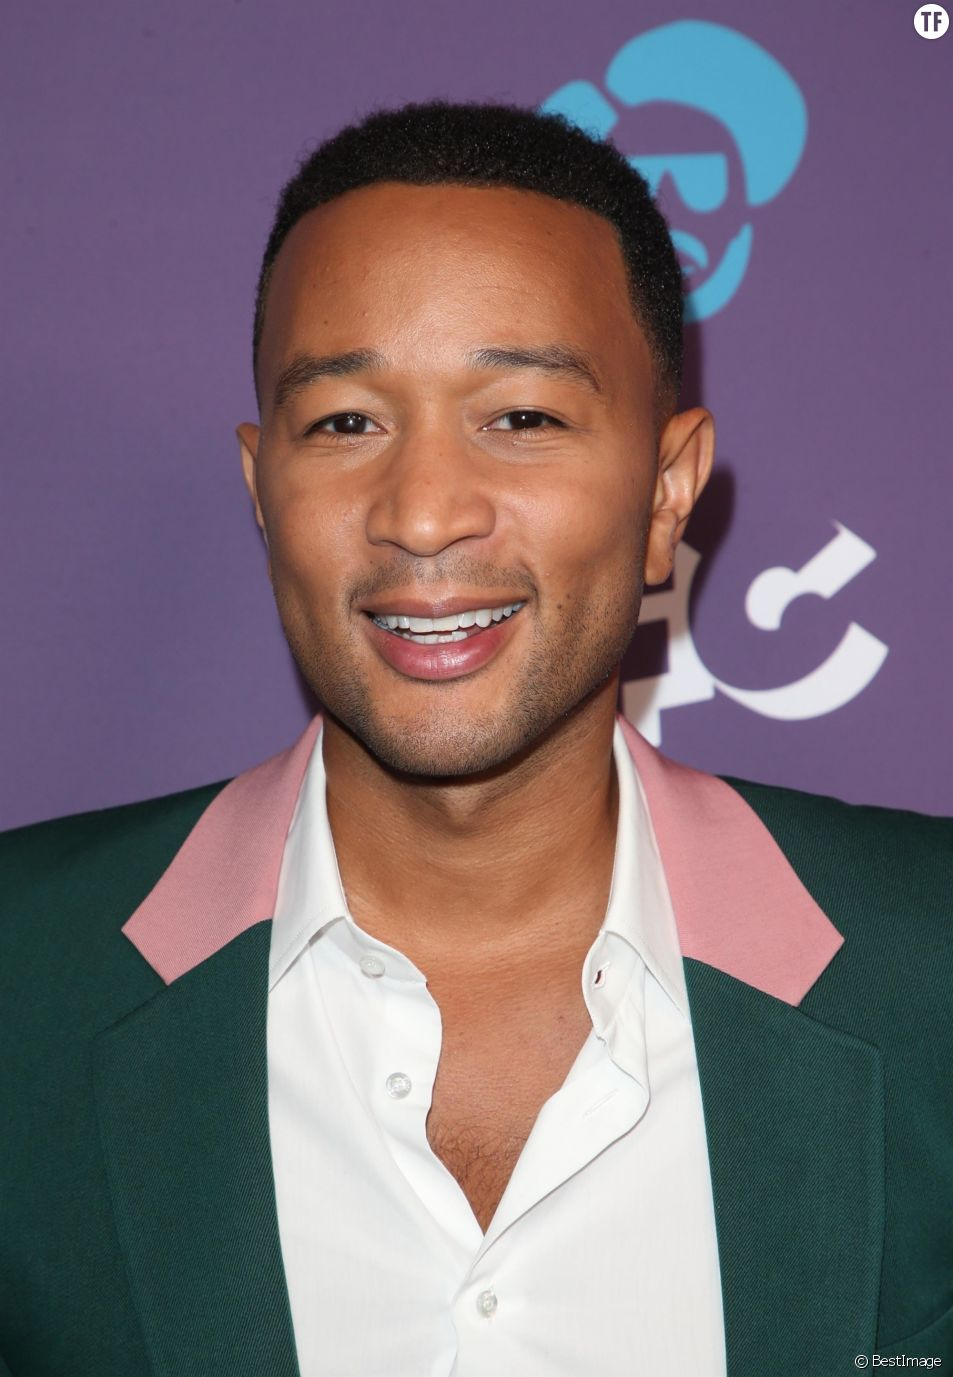 Le chanteur John Legend revisite un hit à l'ère #MeToo.